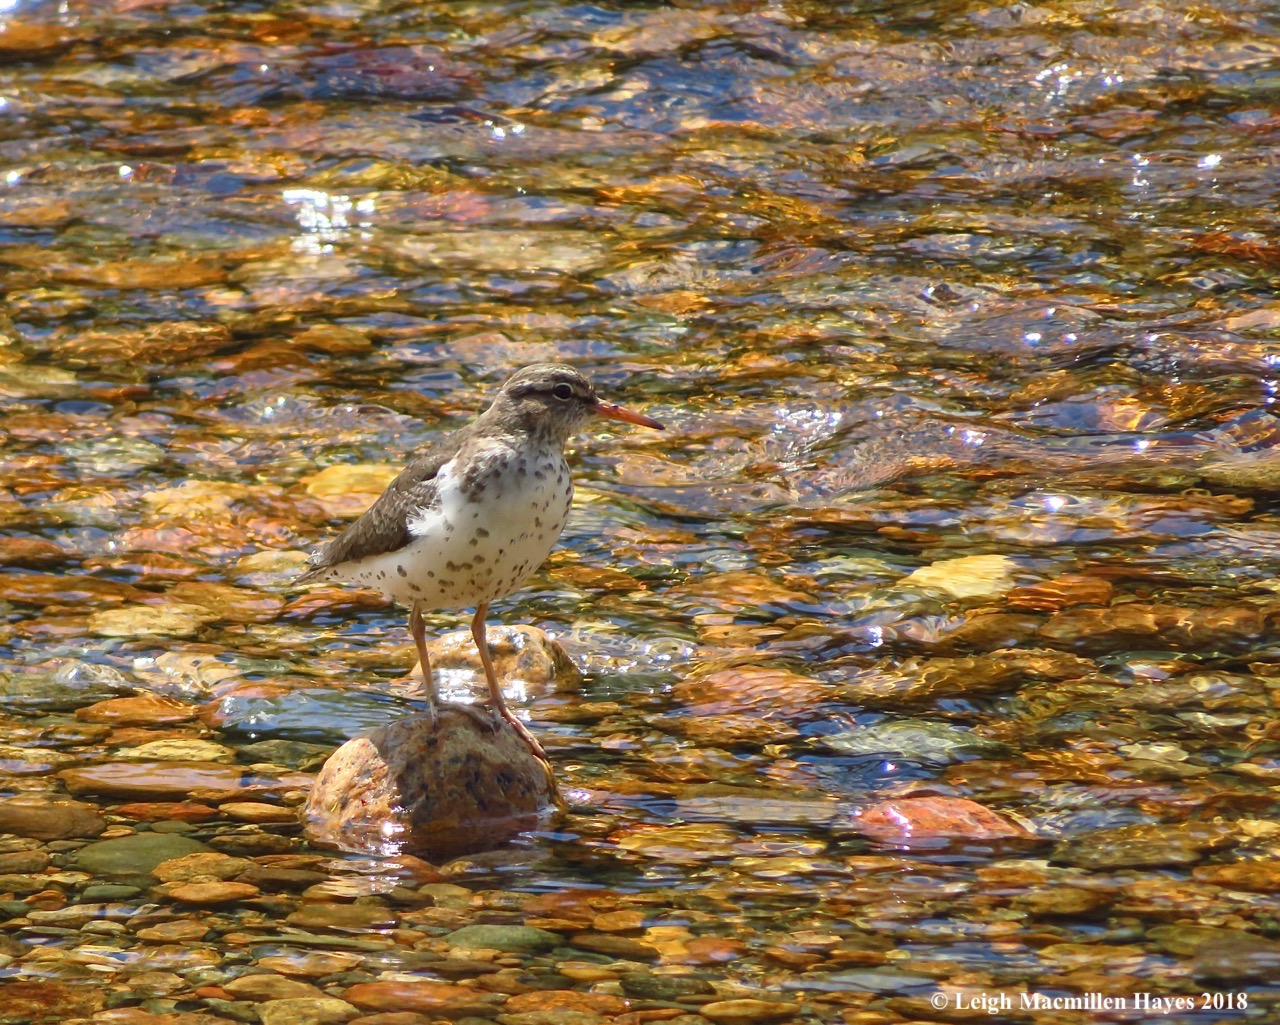 d4, spotted sandpiper